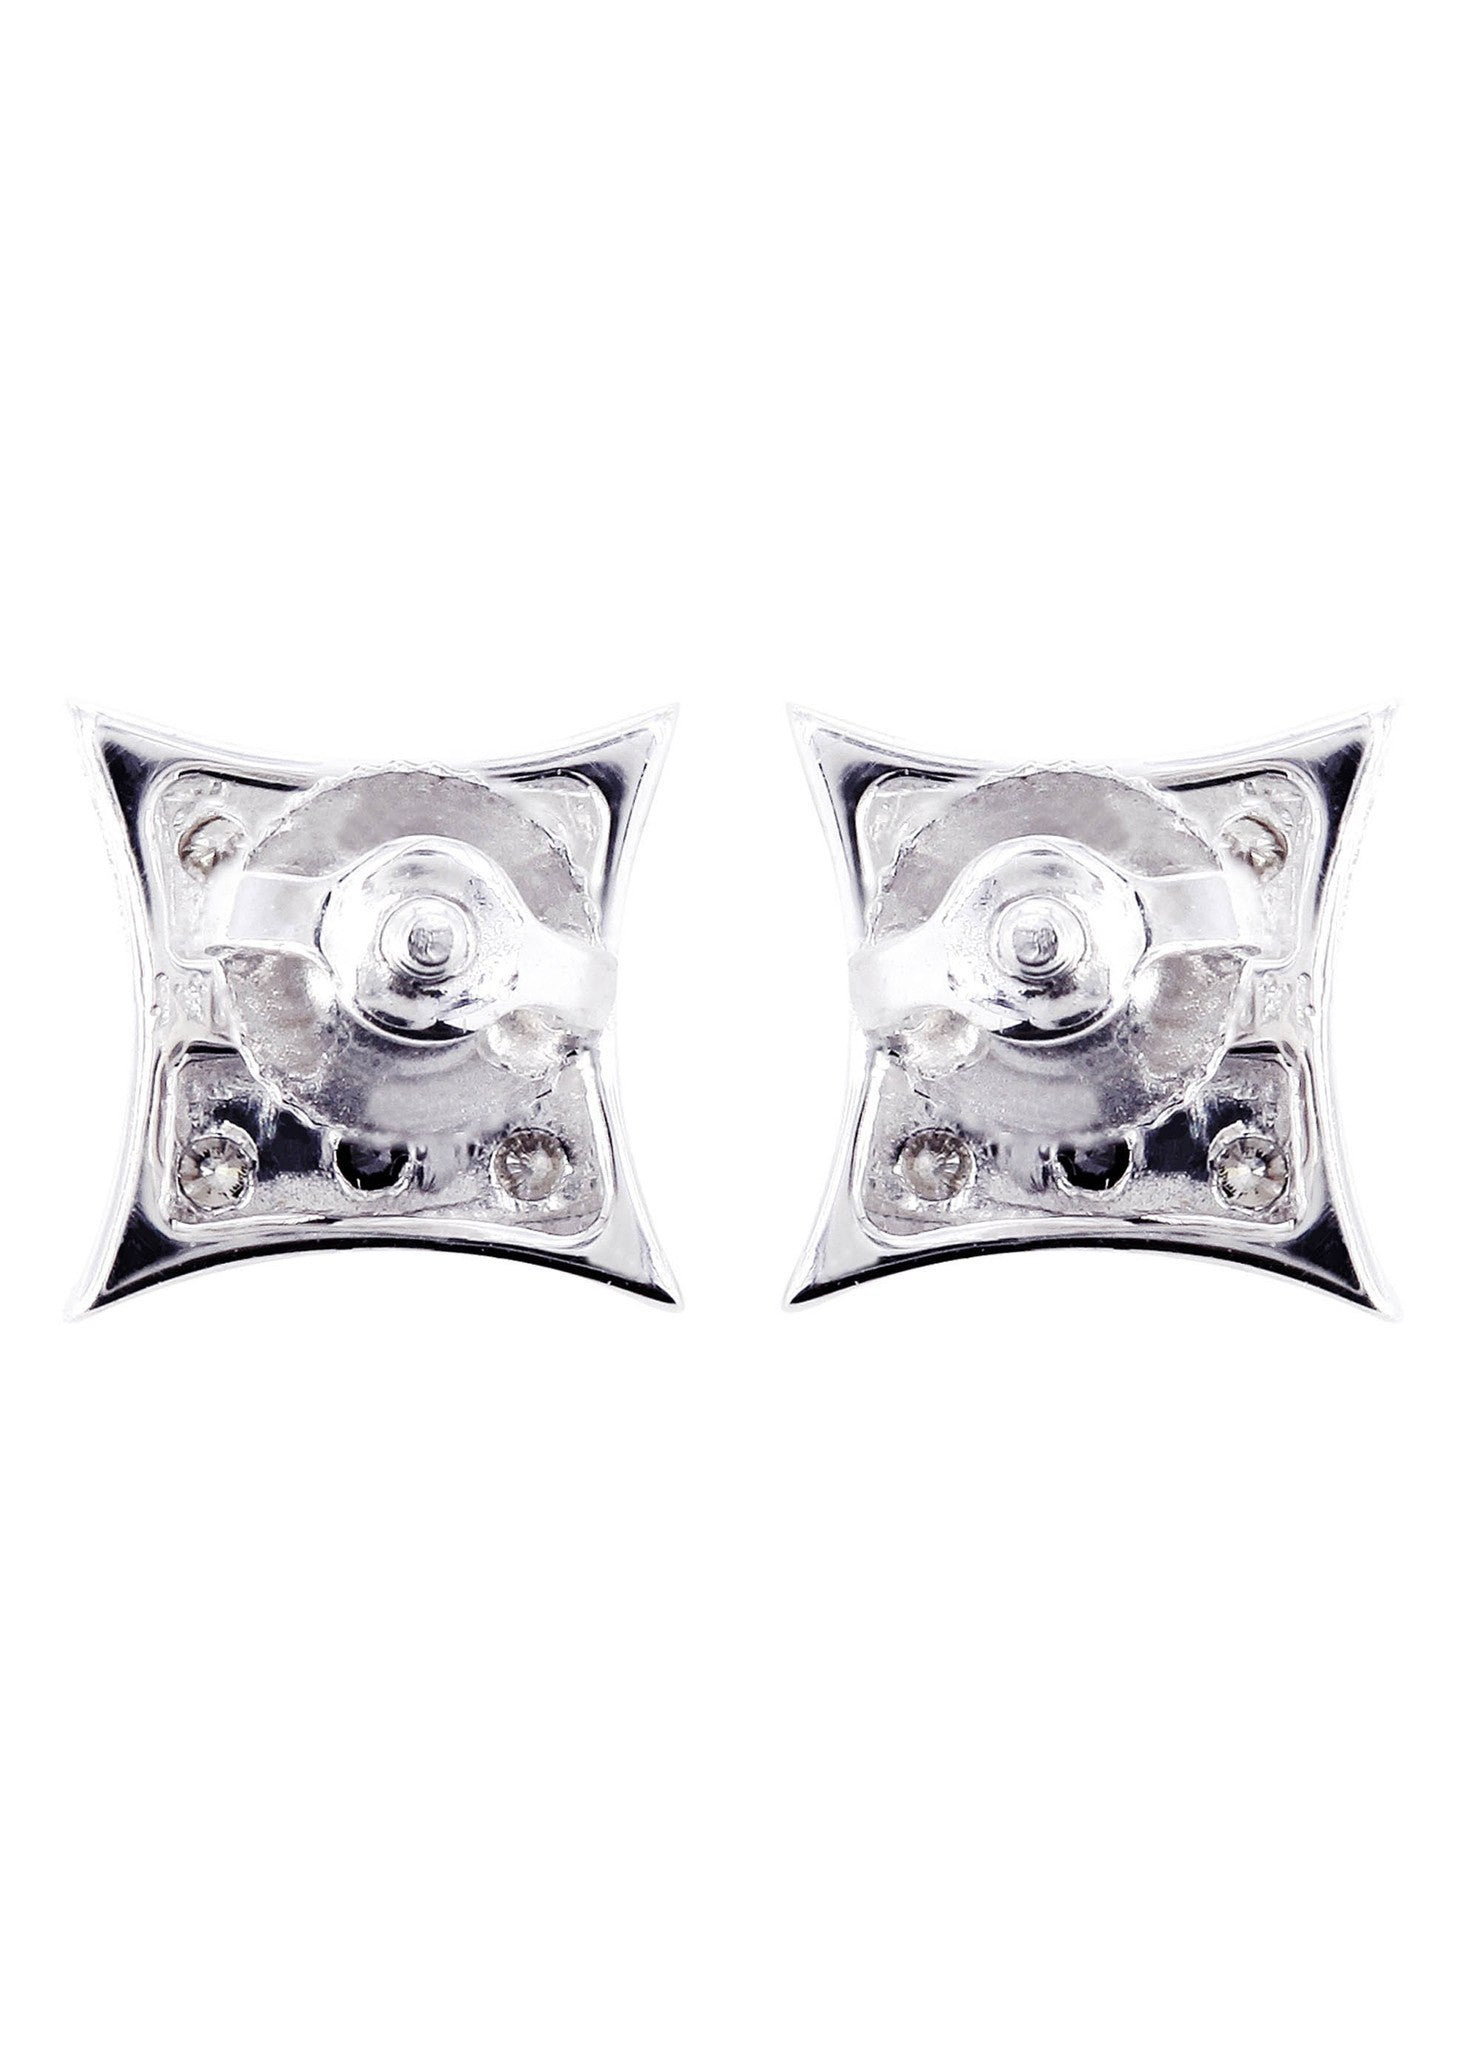 Diamond Earrings For Men 0 2 Carats 14k White Gold